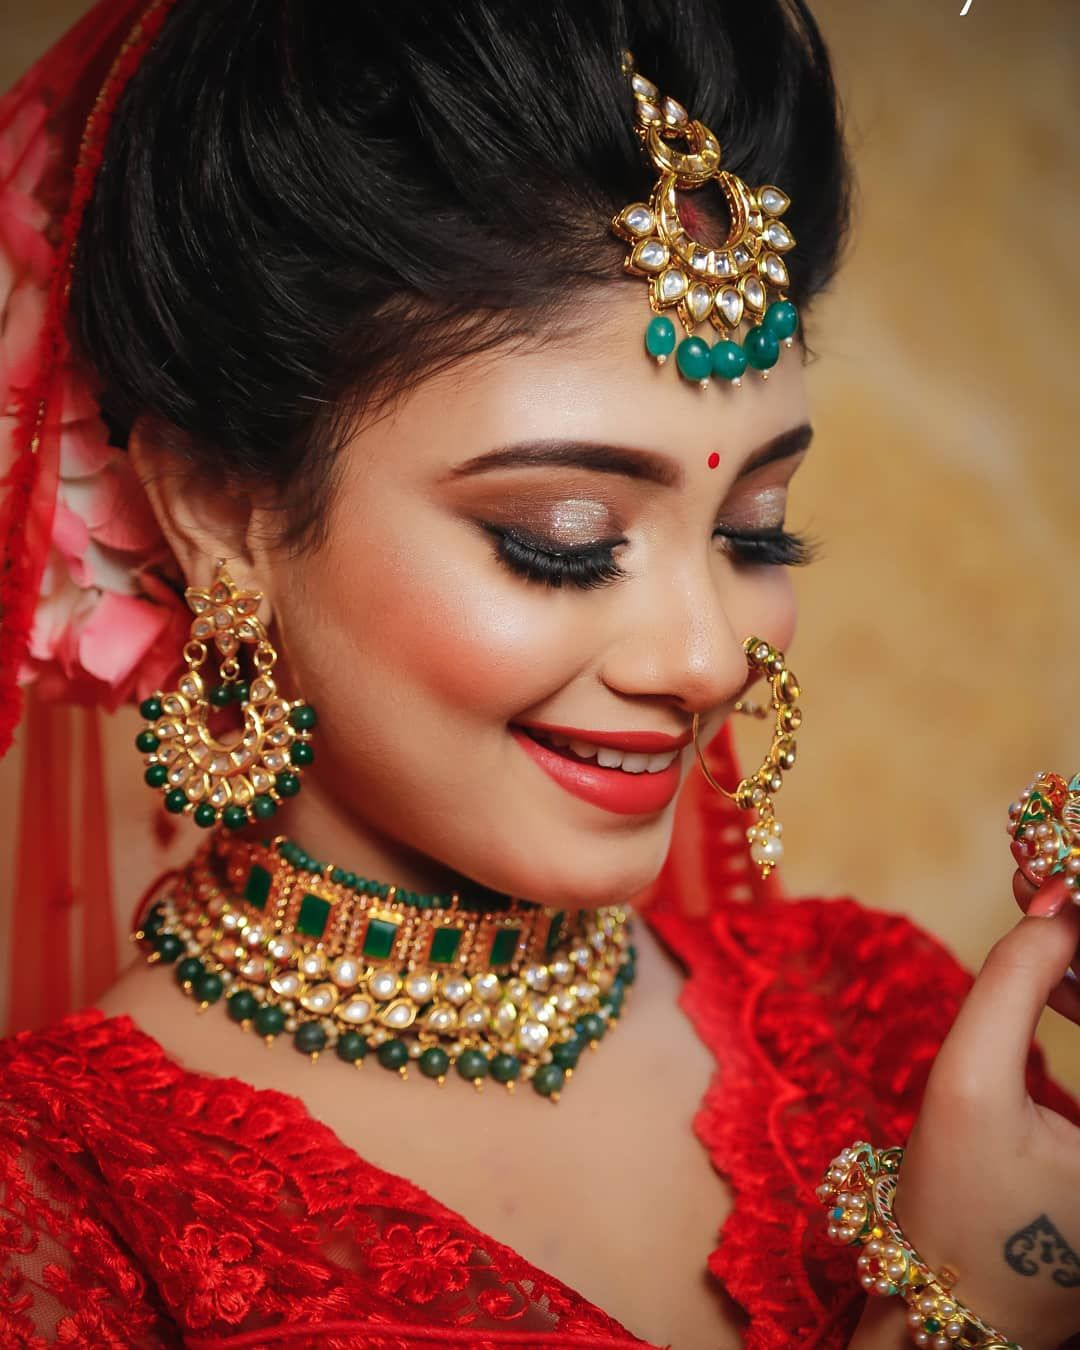 one of the Best pre wedding functions jewellery & Makeup